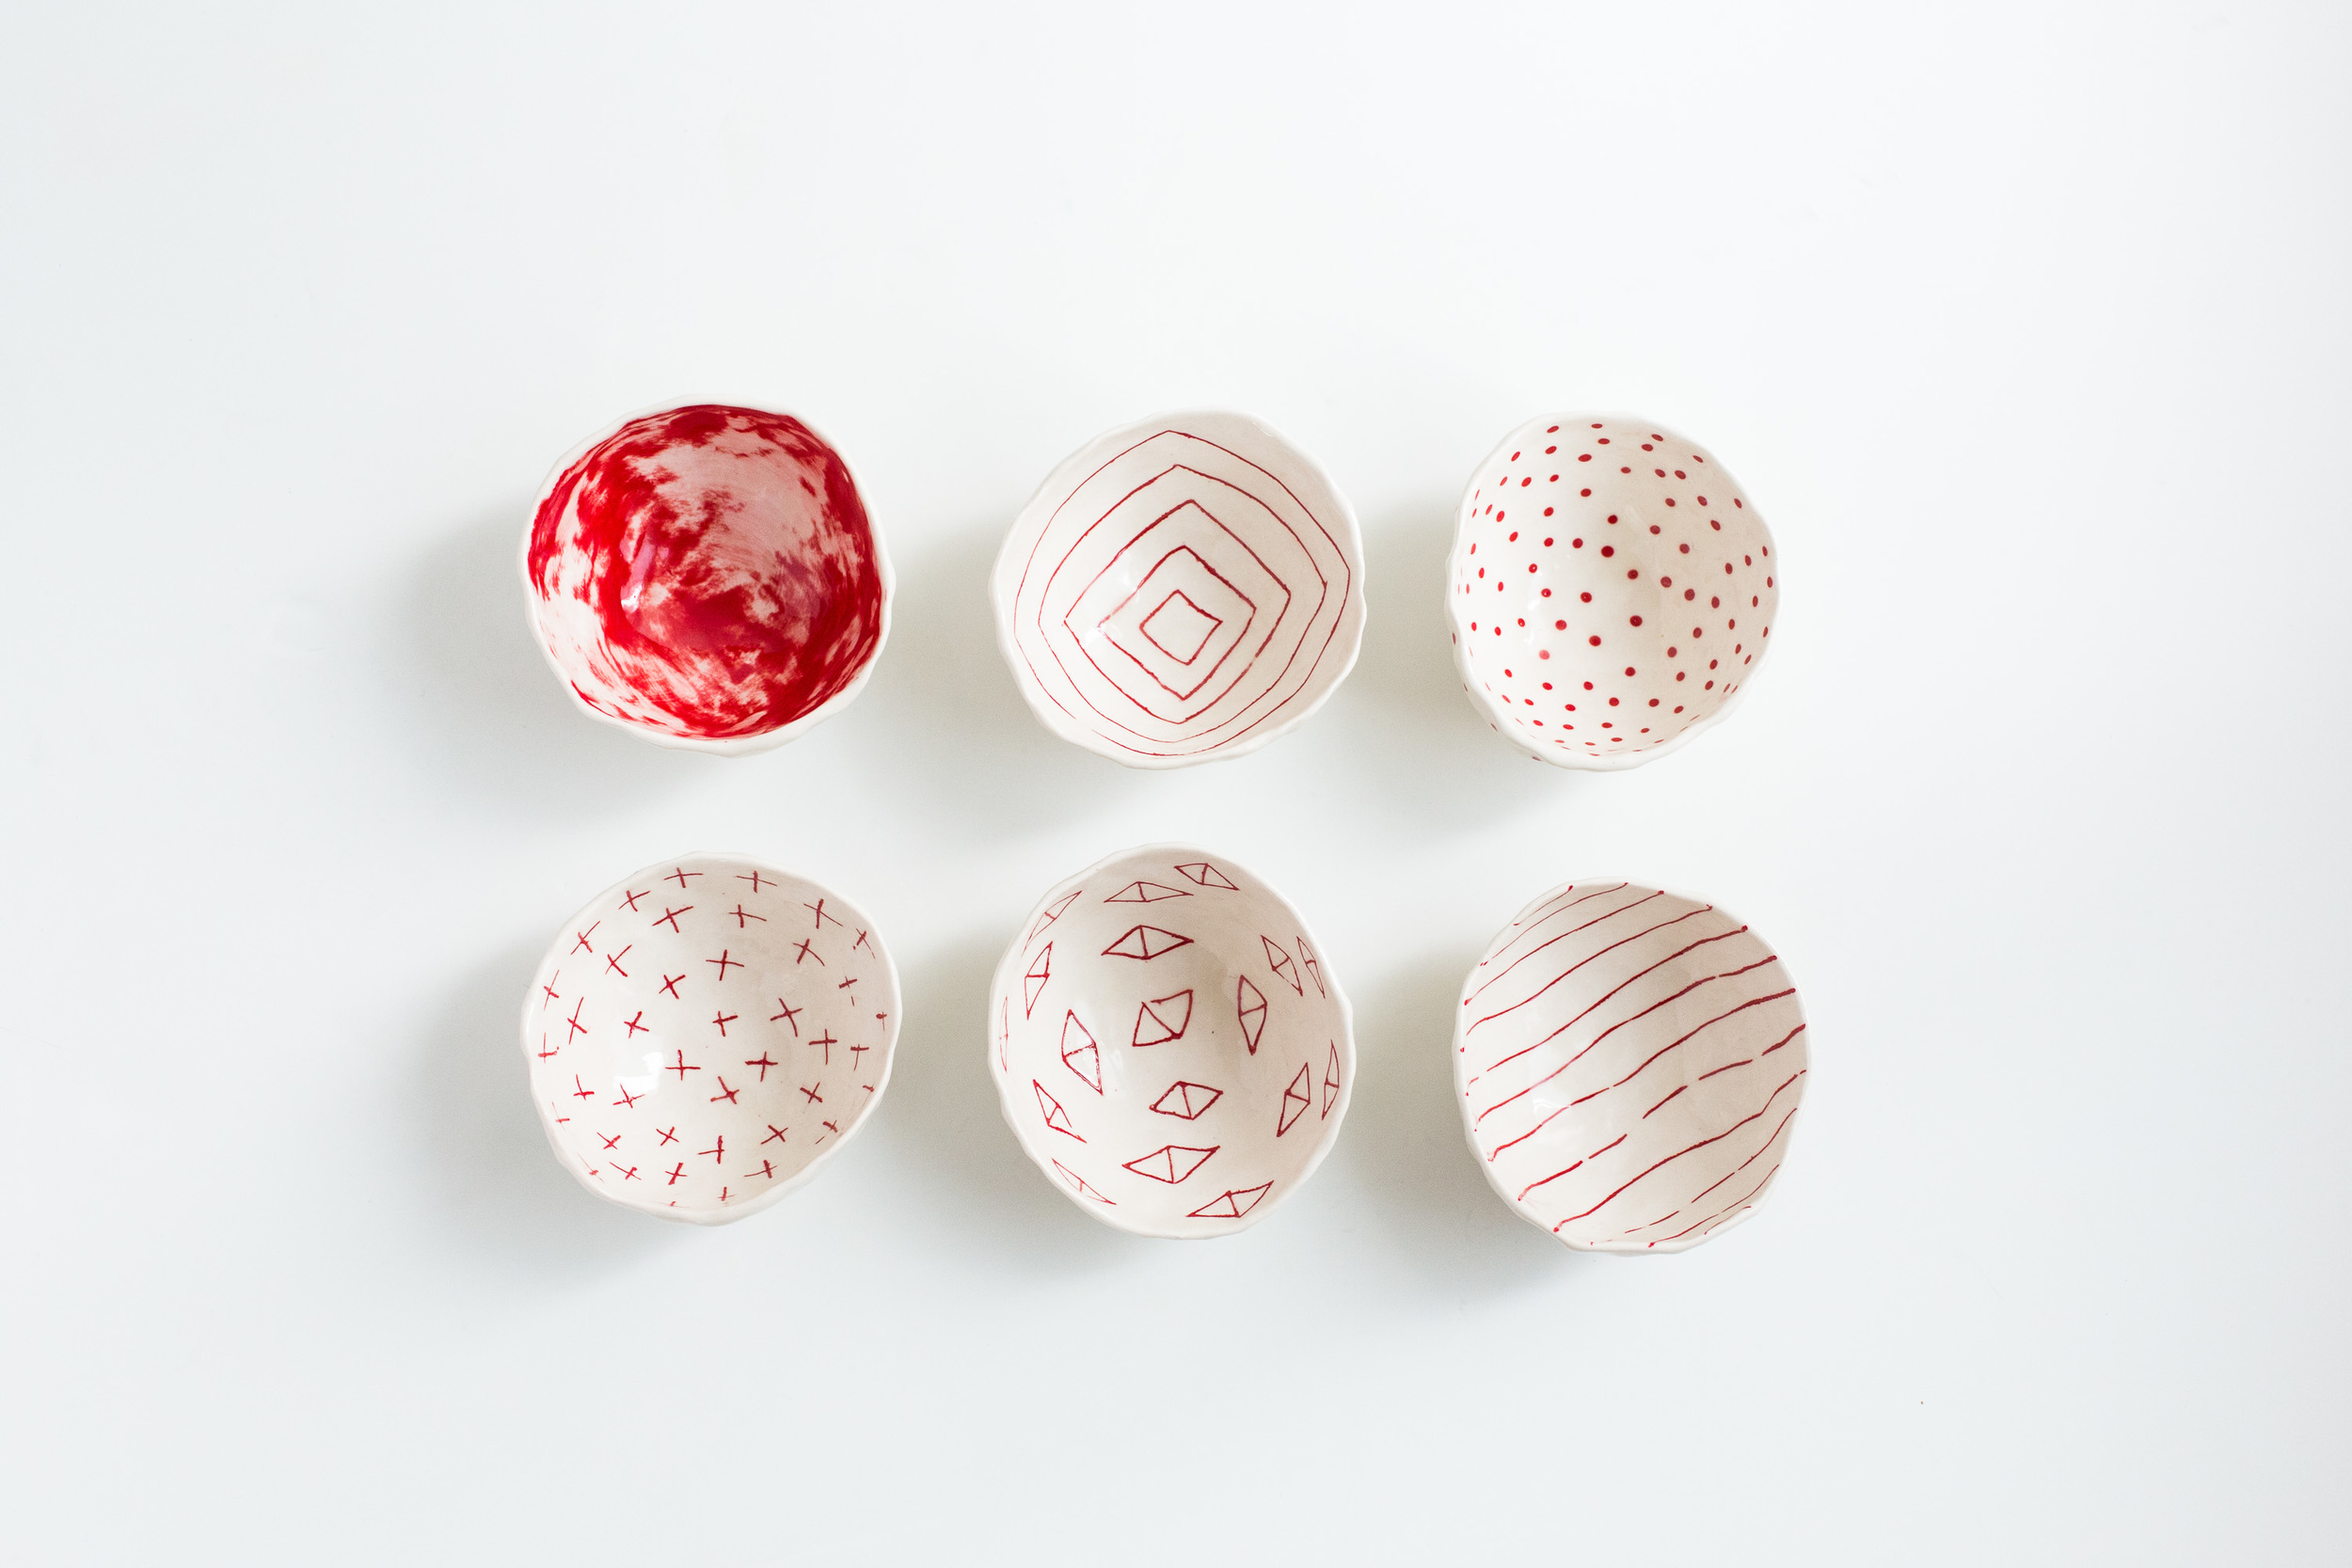 Red Patterned Pinch Bowl Set